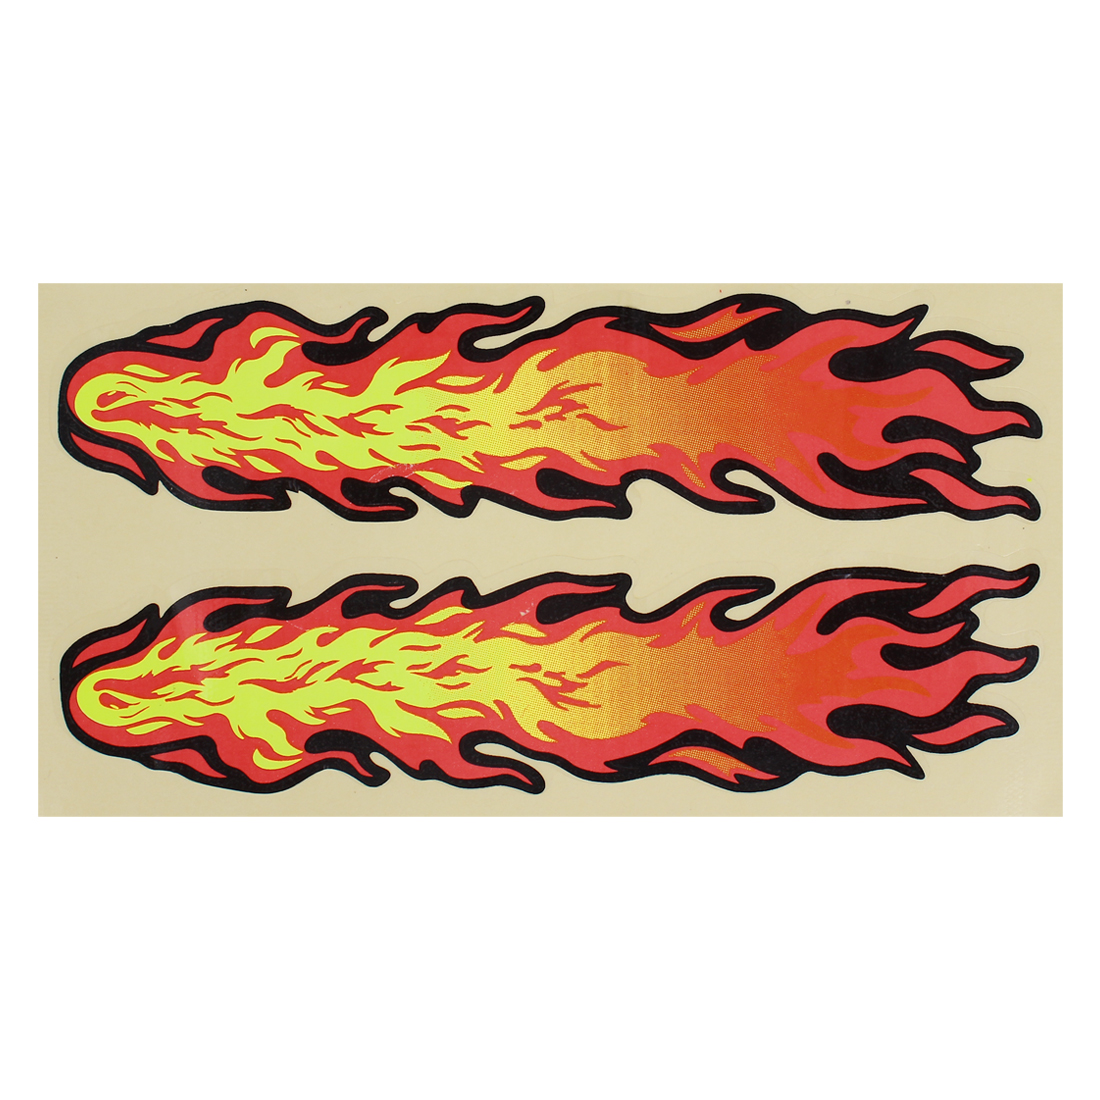 Red Yellow Flames Decal Style Sticker for Car Motorcycle